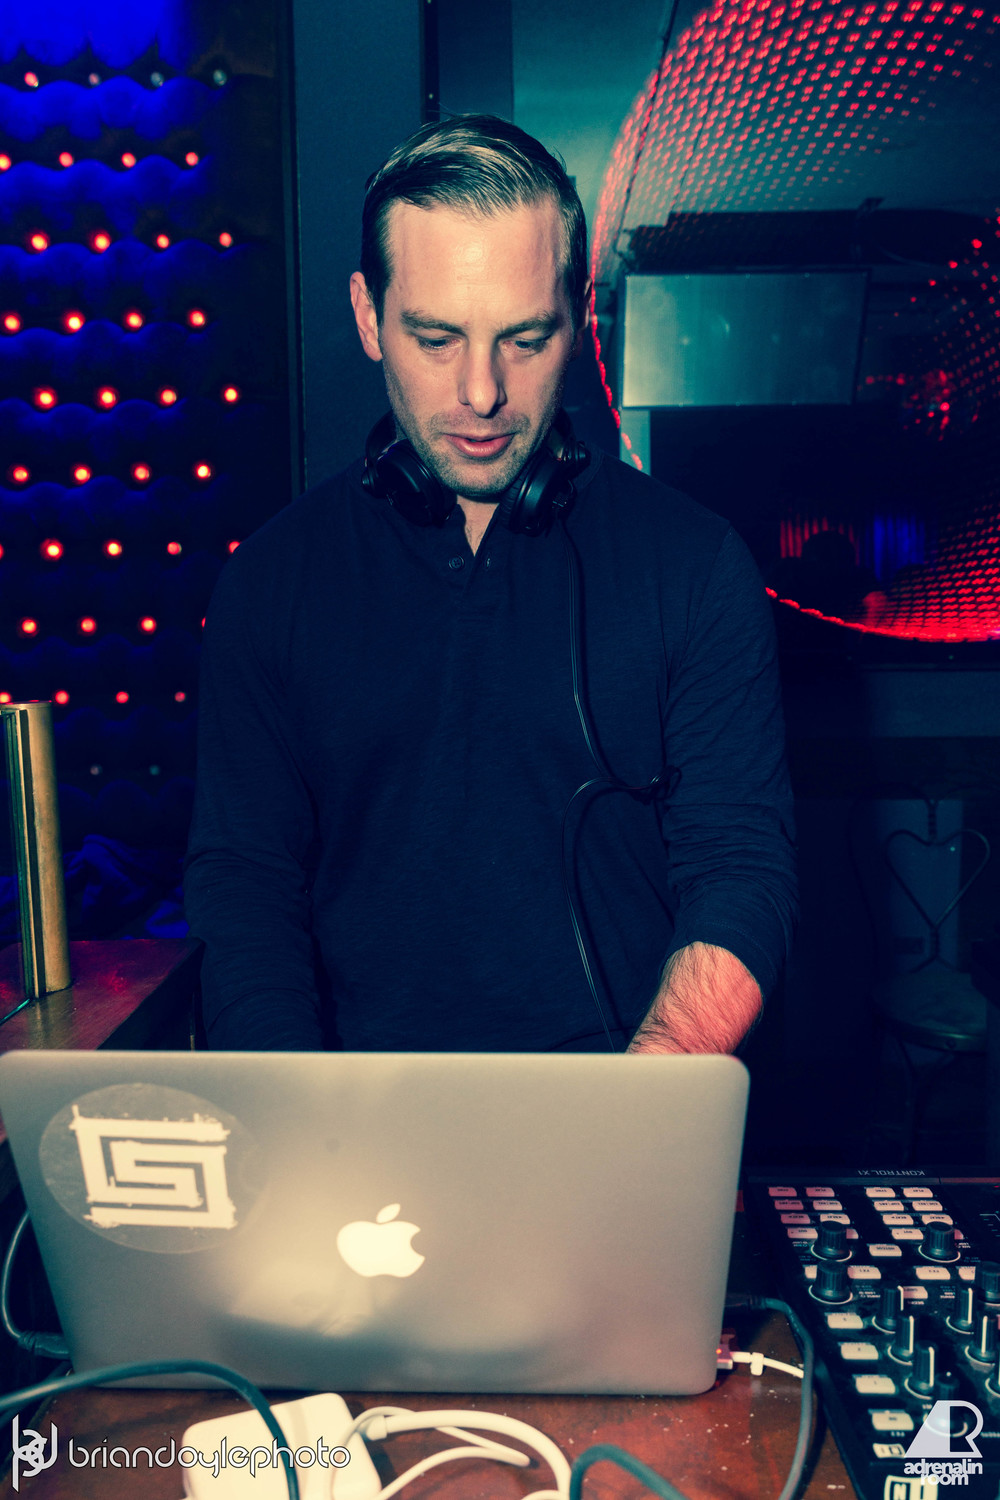 Dan Sieg @ Club Audio SF 03.01.2015-3.jpg